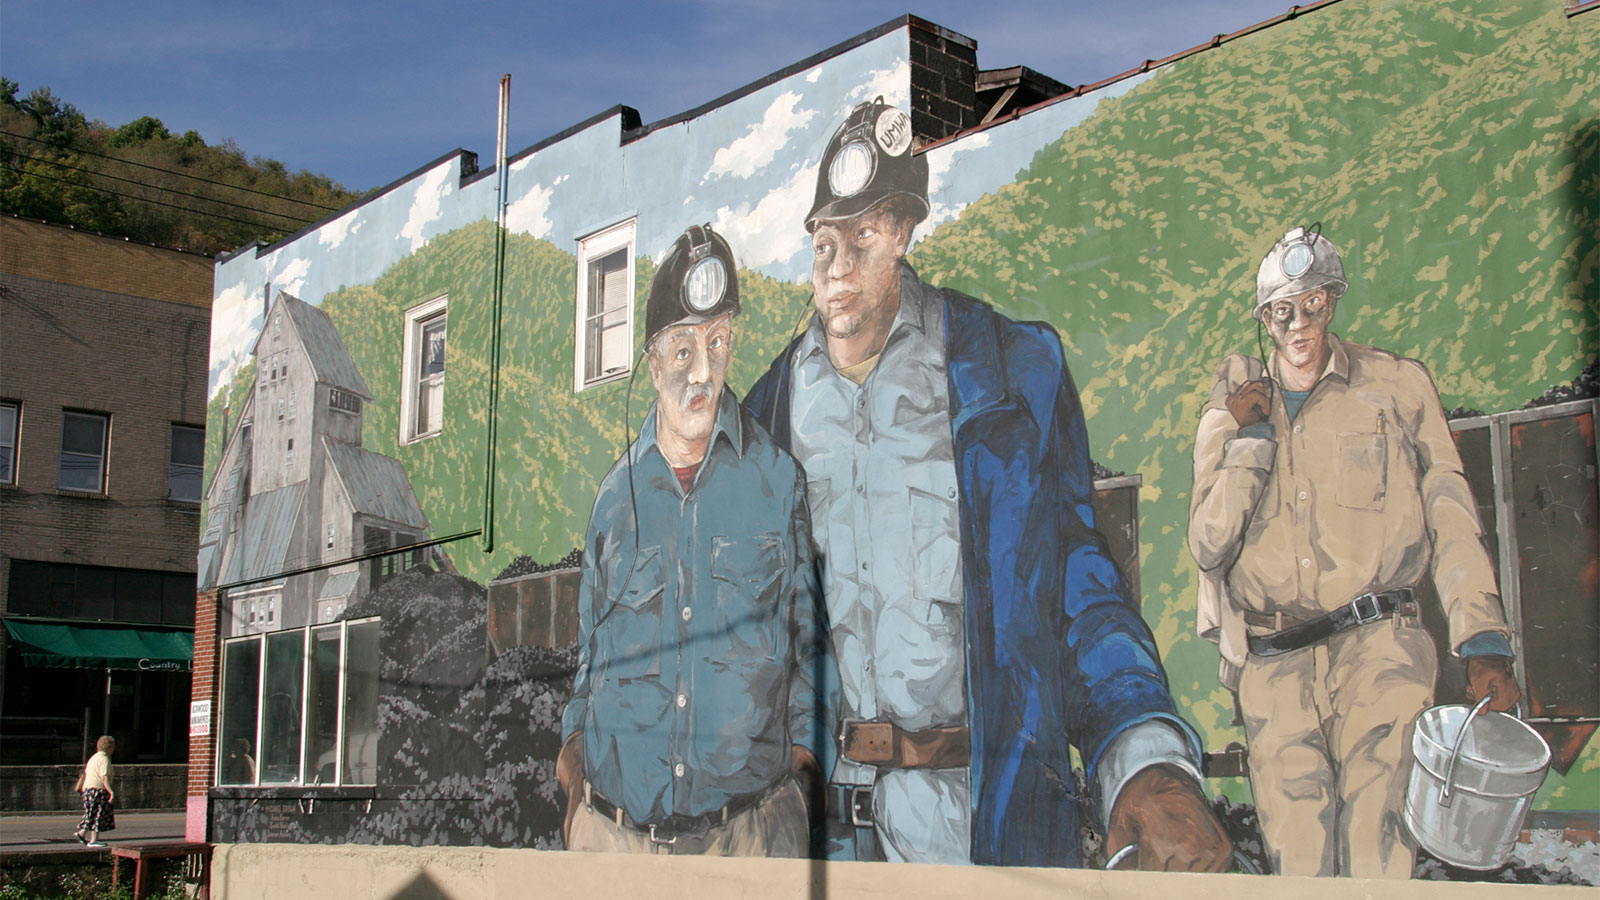 A coal miners wall mural on Main Street in Richwood